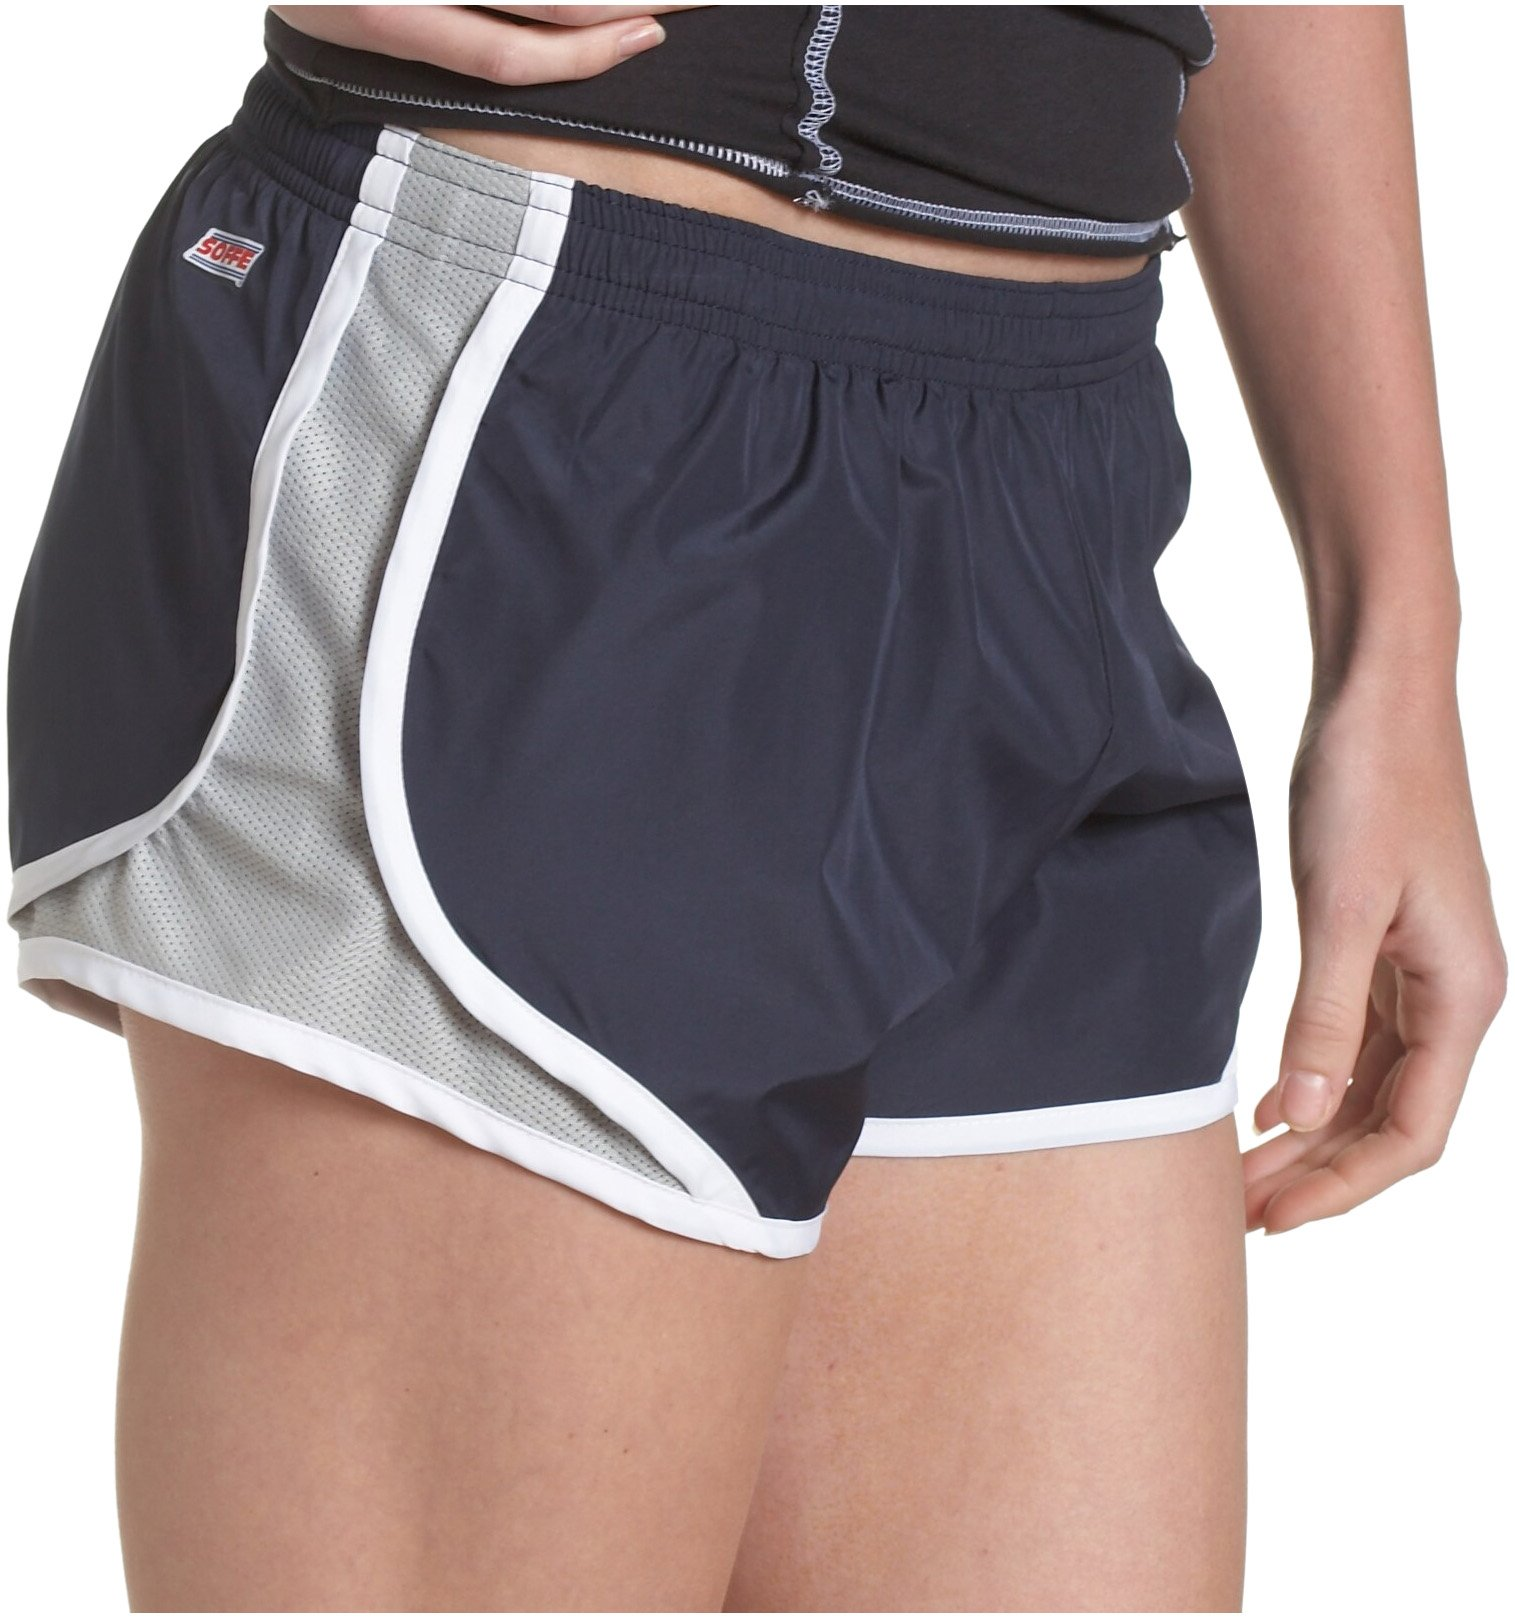 Soffe Women's Juniors' Team Shorty Shorts, Navy/Silver, Large by Soffe